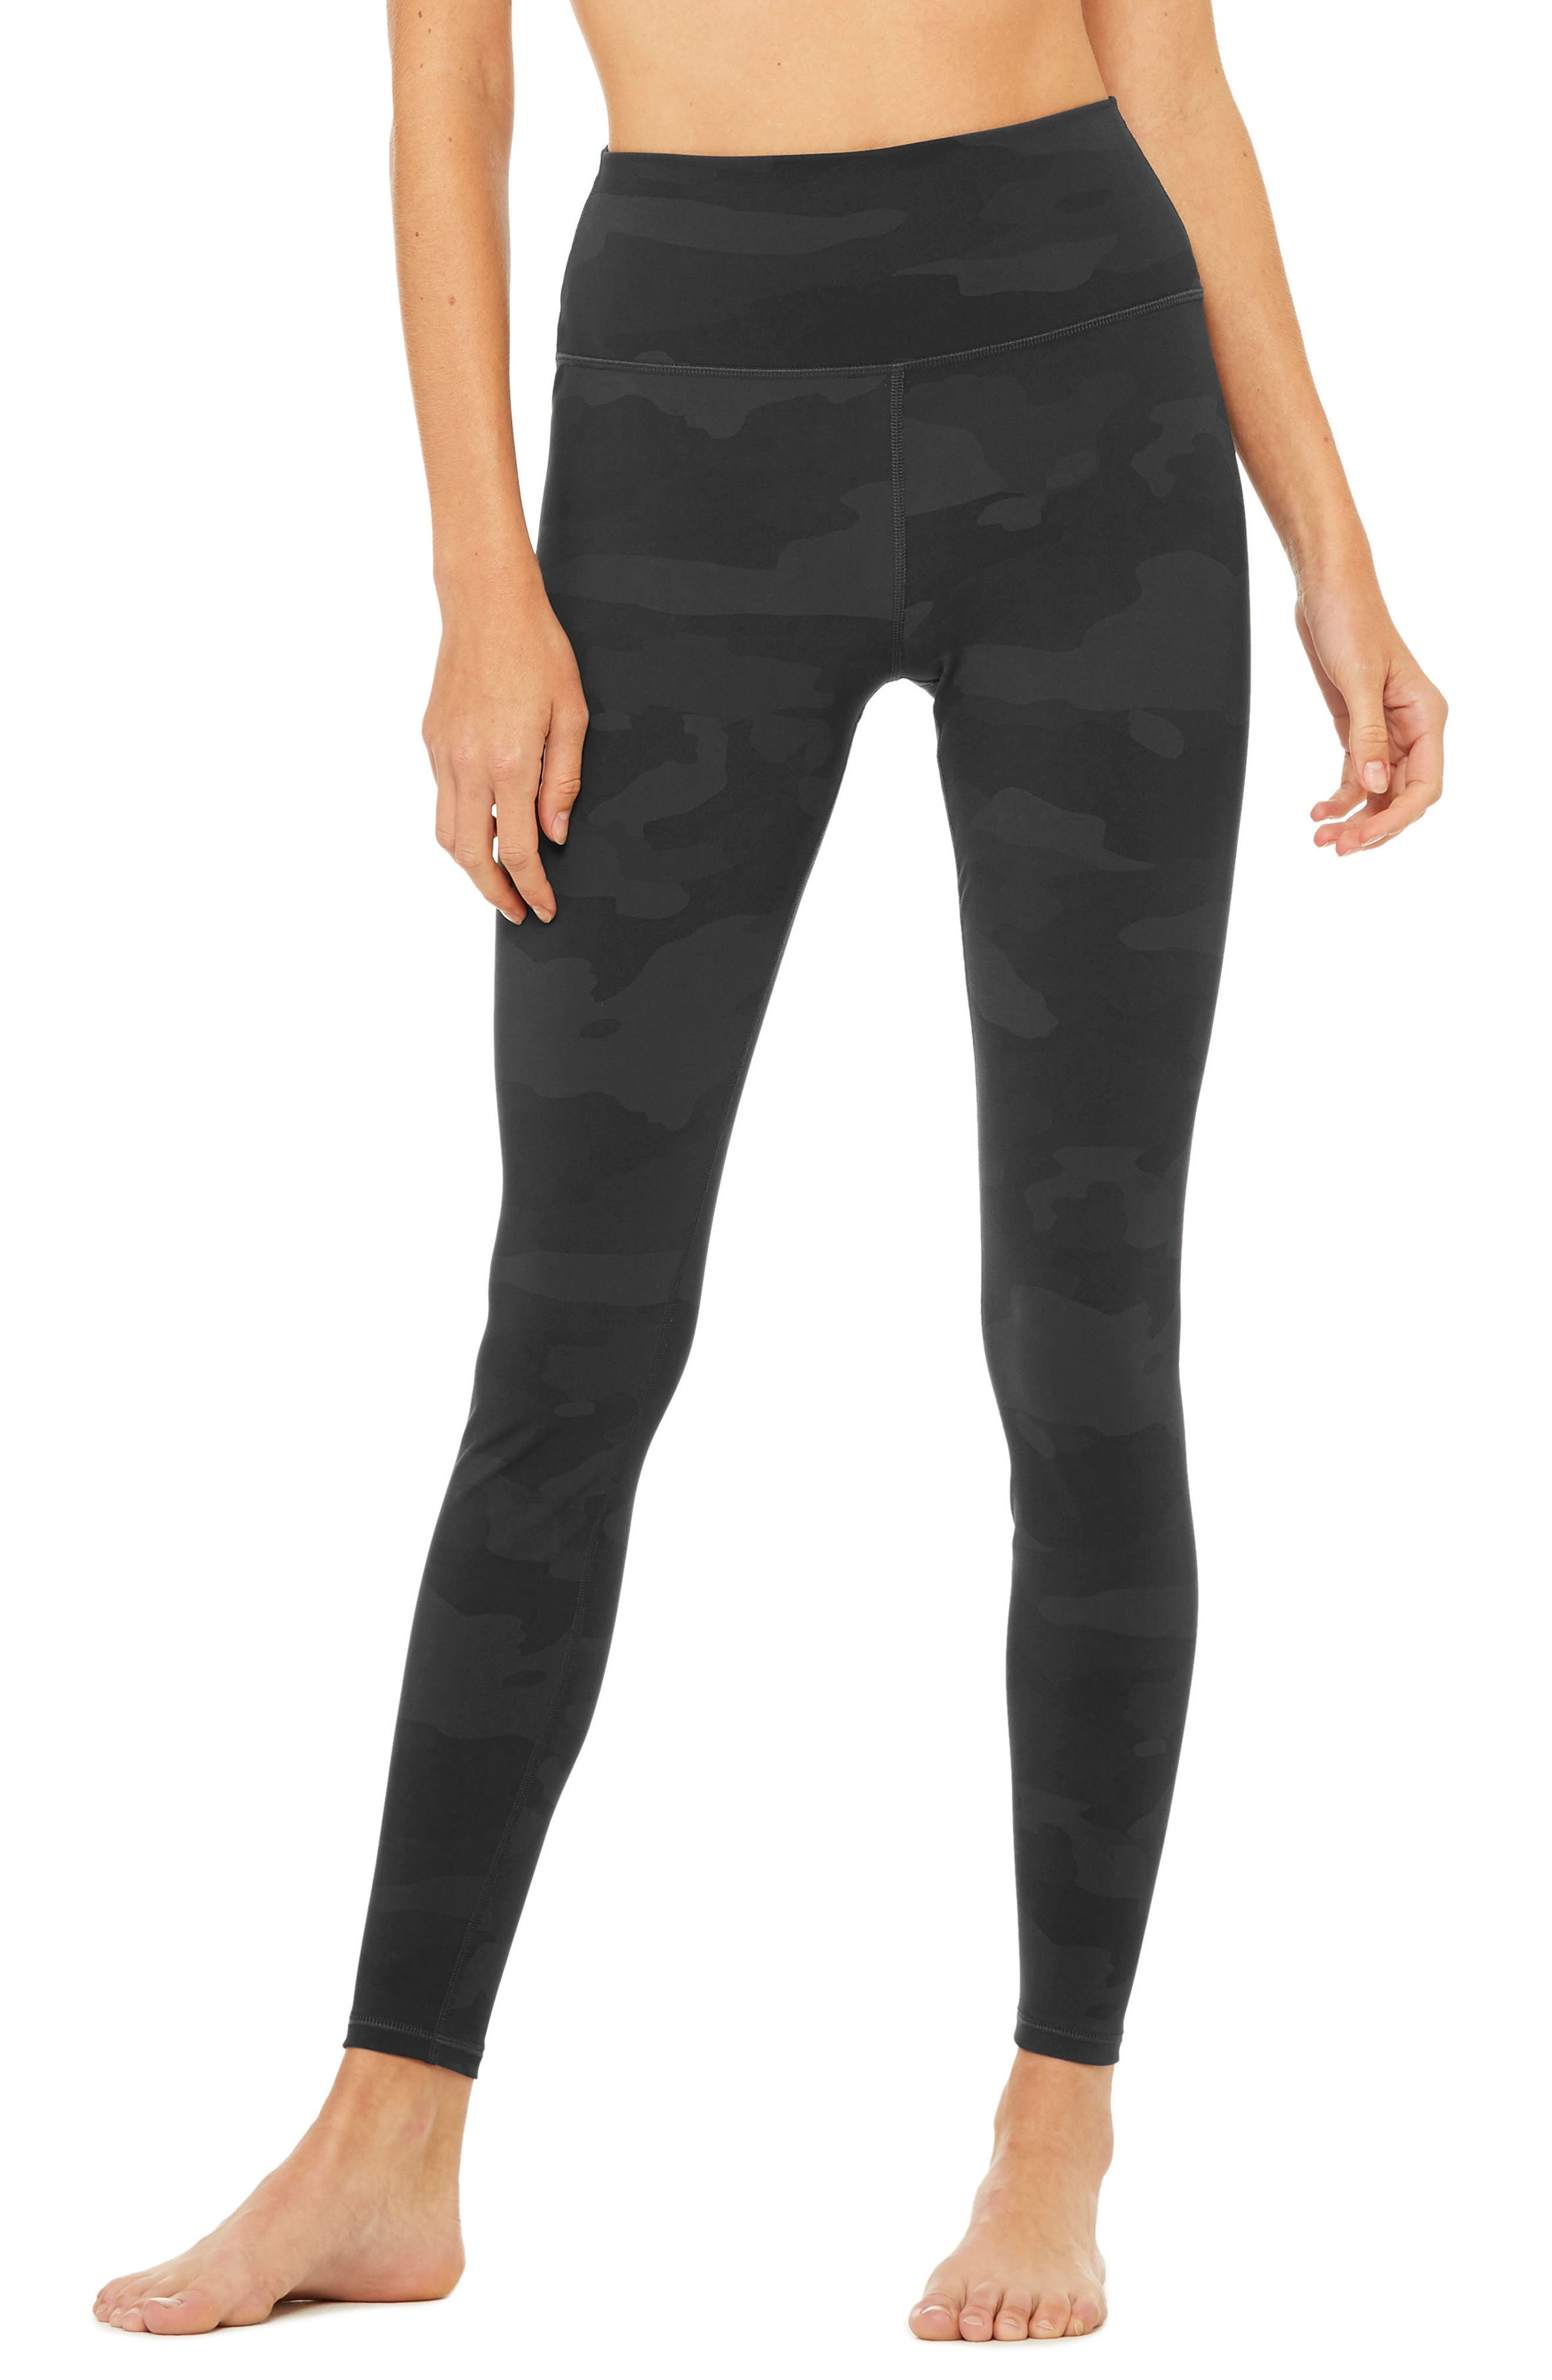 ALO, Vapor High Waist Leggings, Main thumbnail 1, color, 011